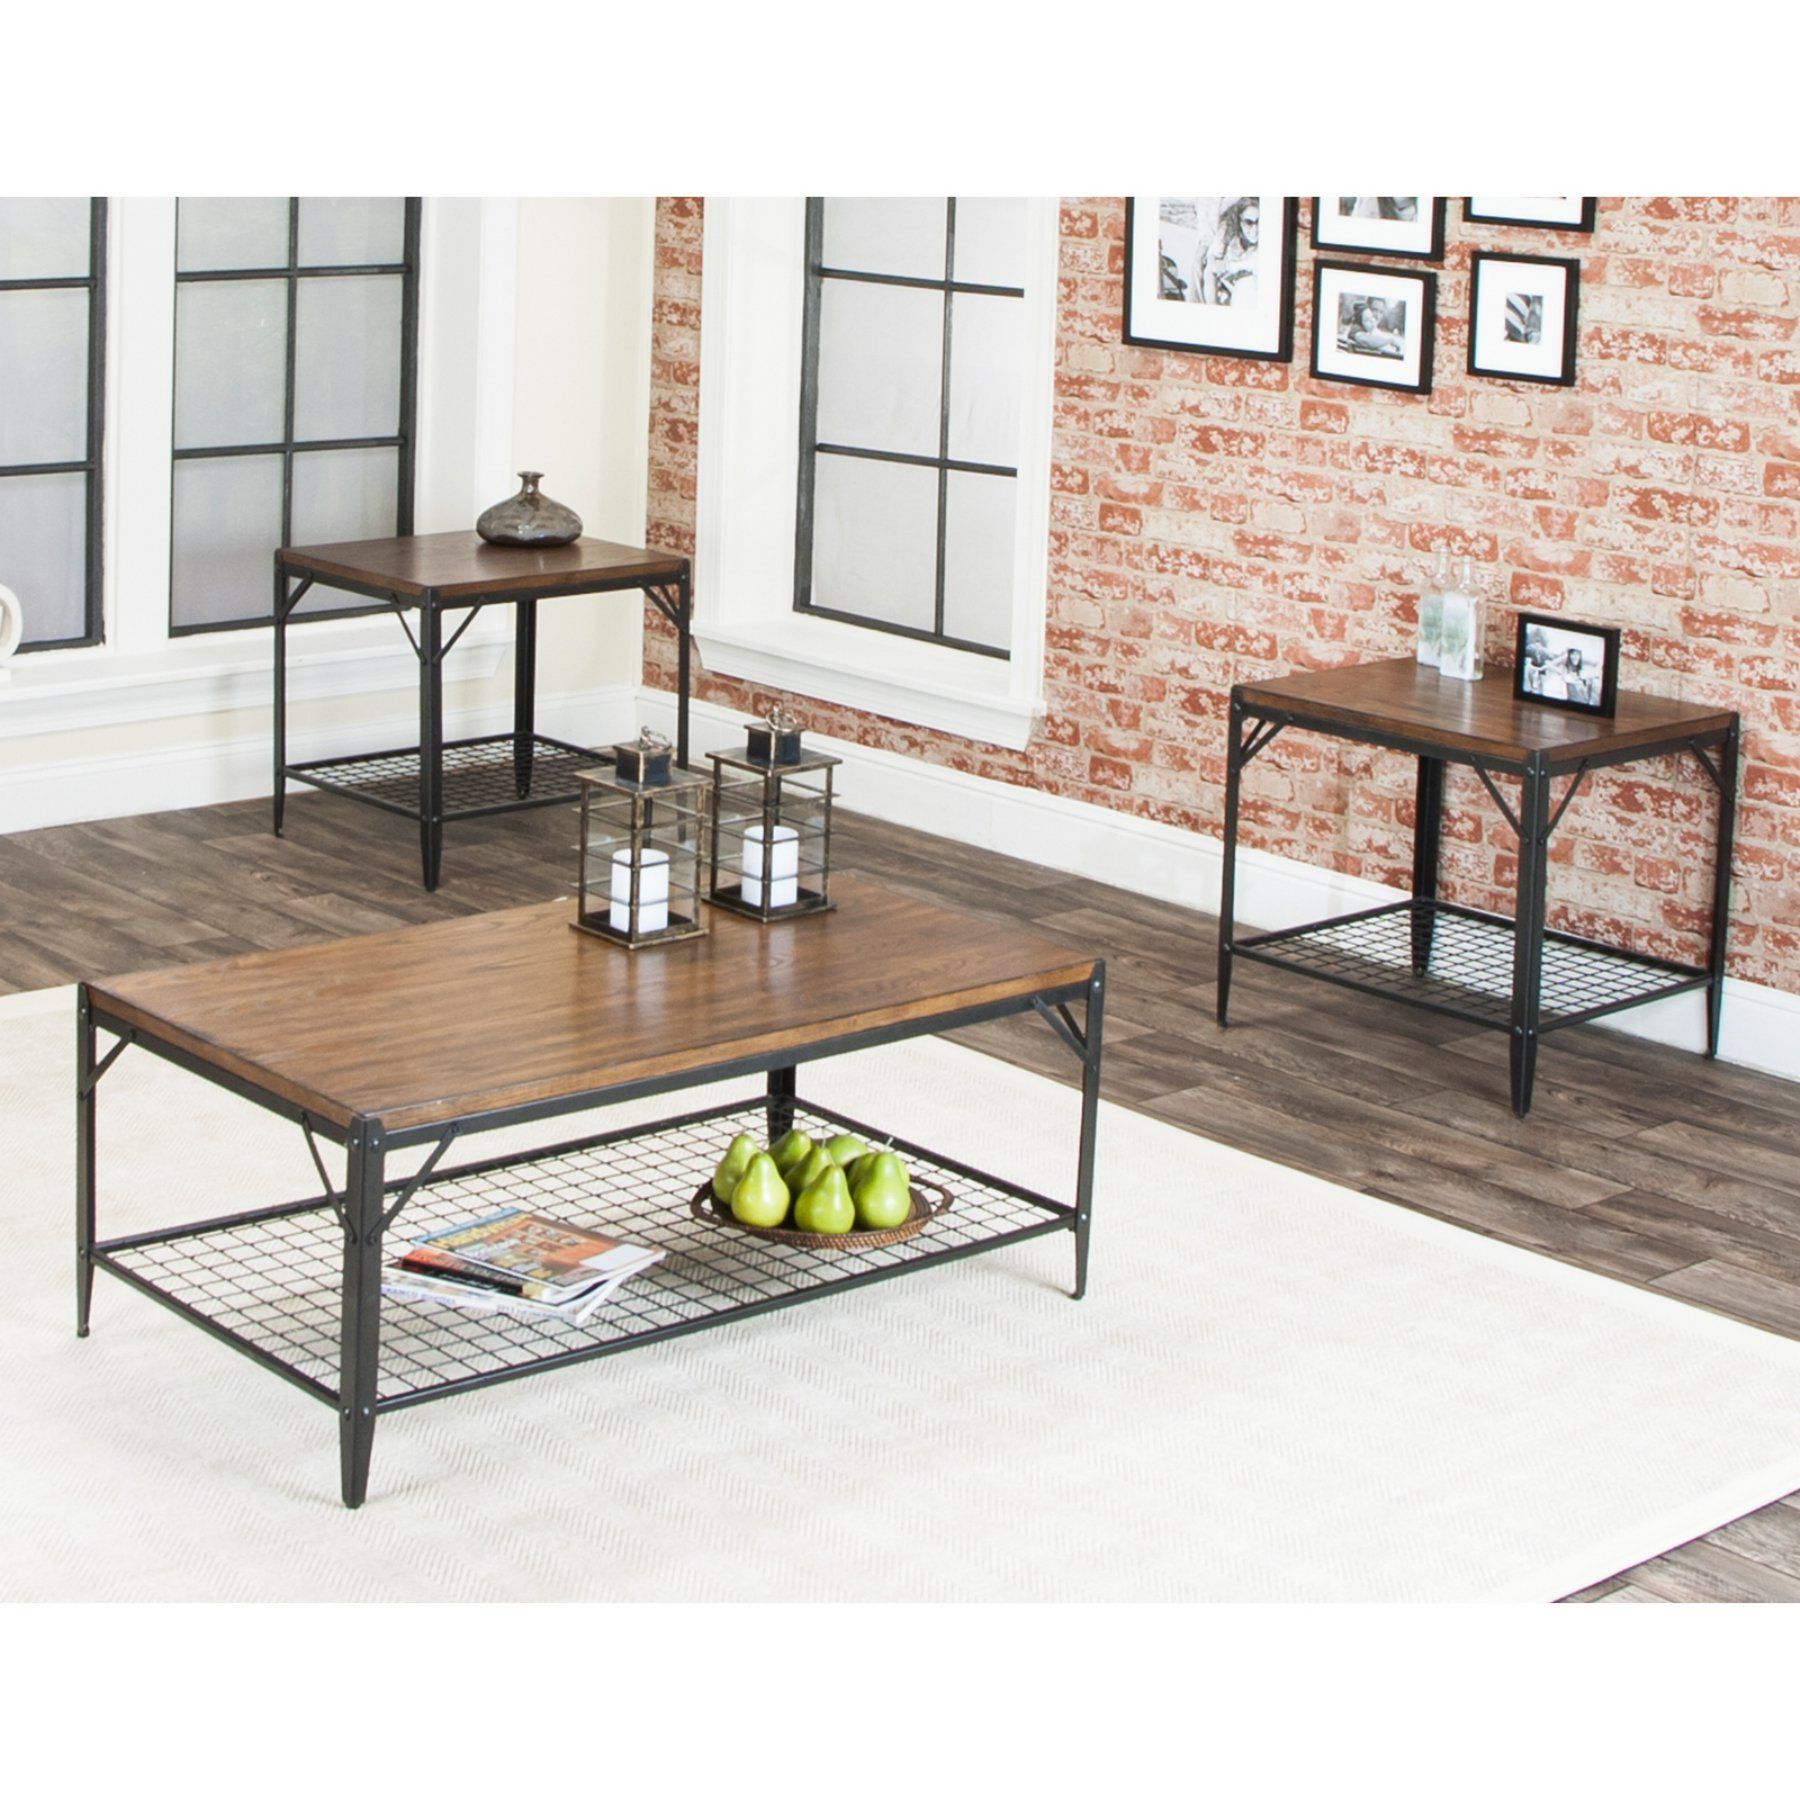 Sunset Trading Industry Standard 3 Piece Coffee Table Set - CR-W2770-90